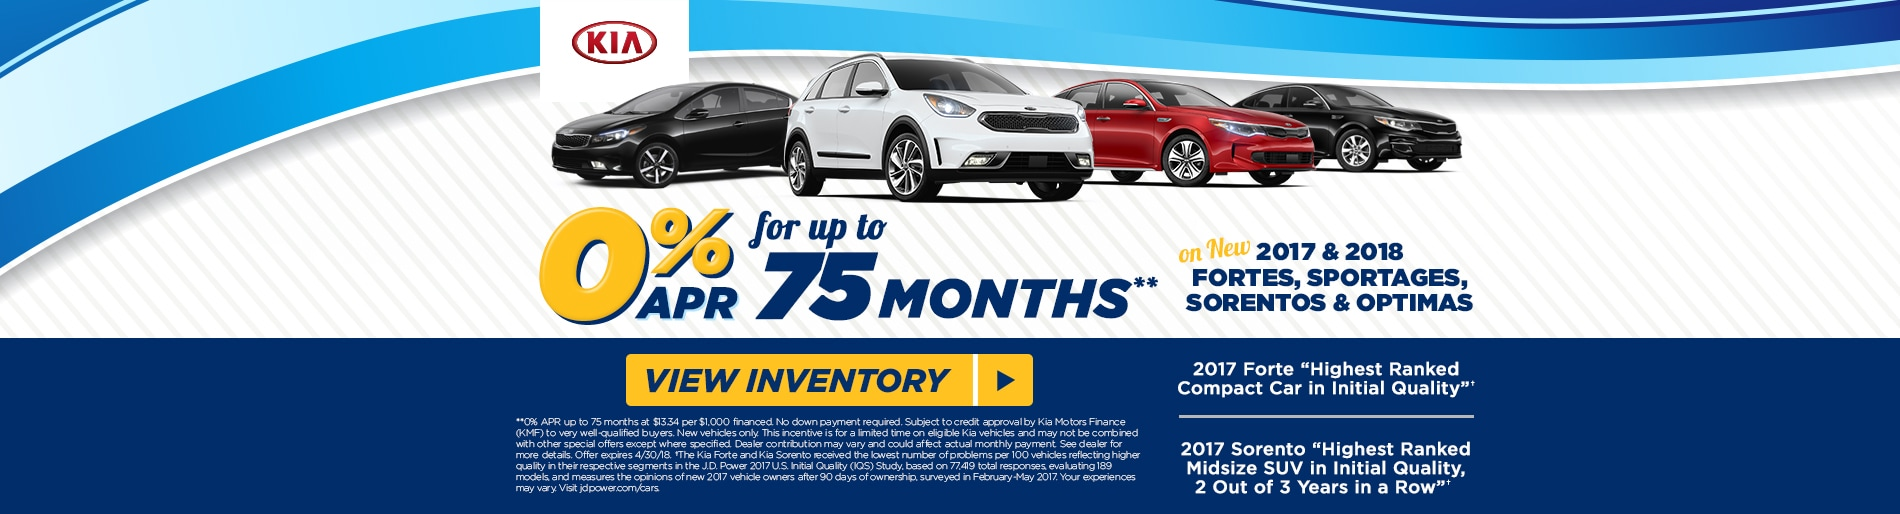 Fred Beans Kia >> 0 Apr On Select 2017 2018 Models At Fred Beans Kia